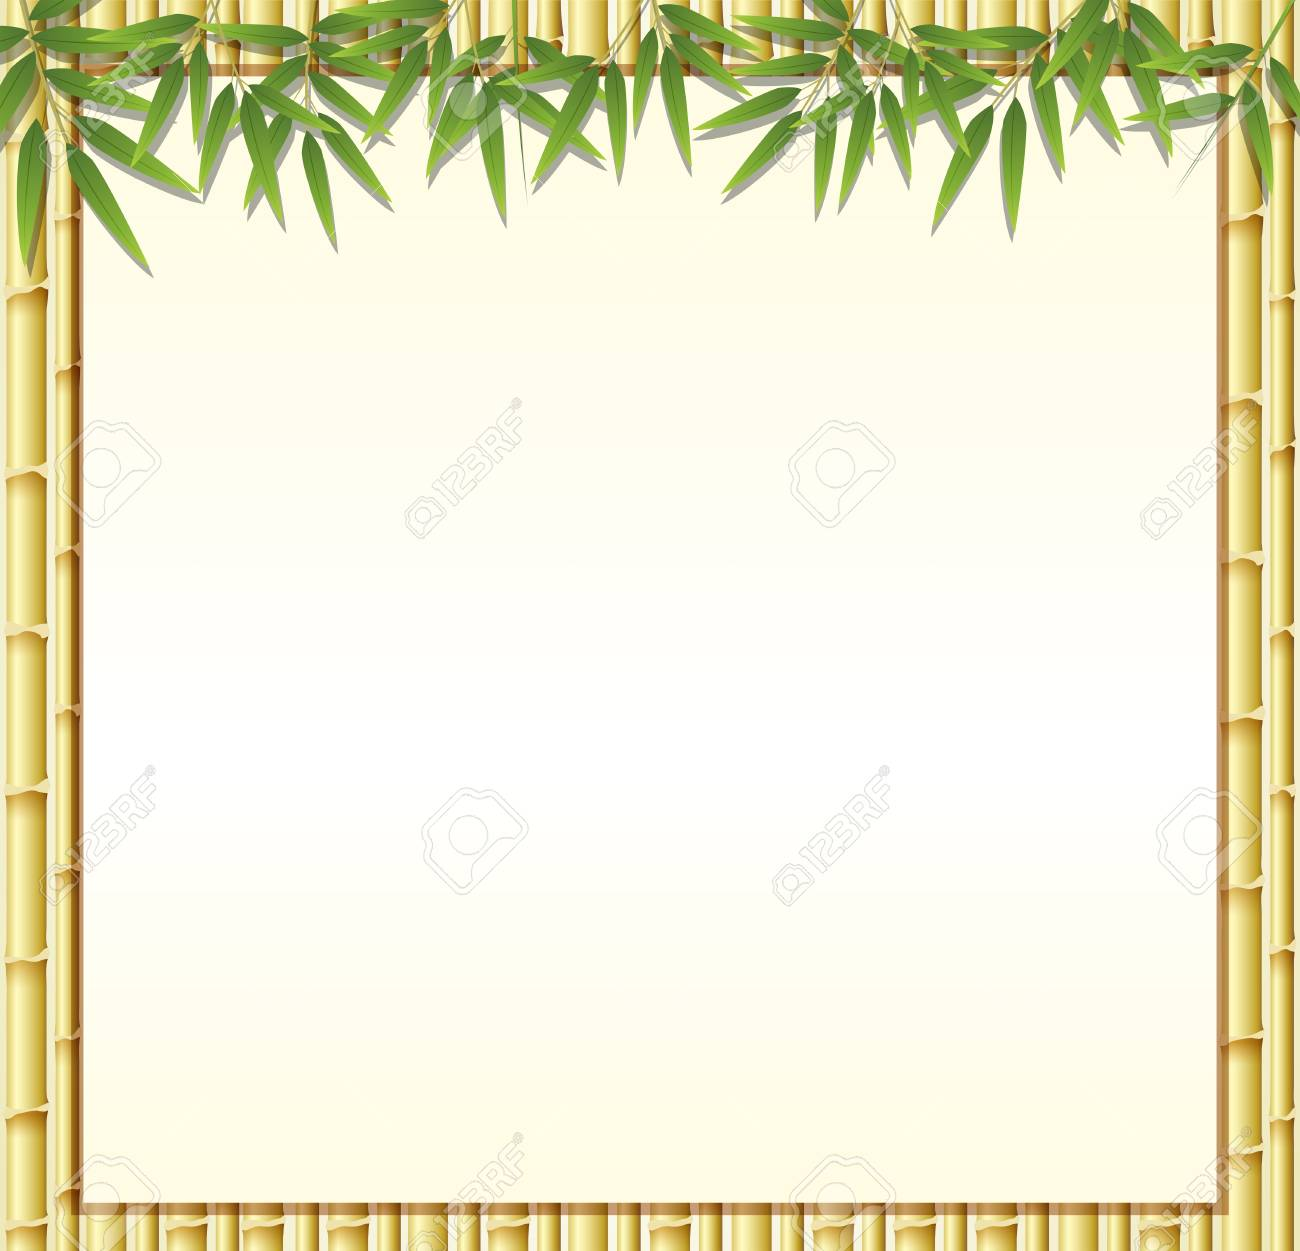 Border template with brown bamboo stems illustration.